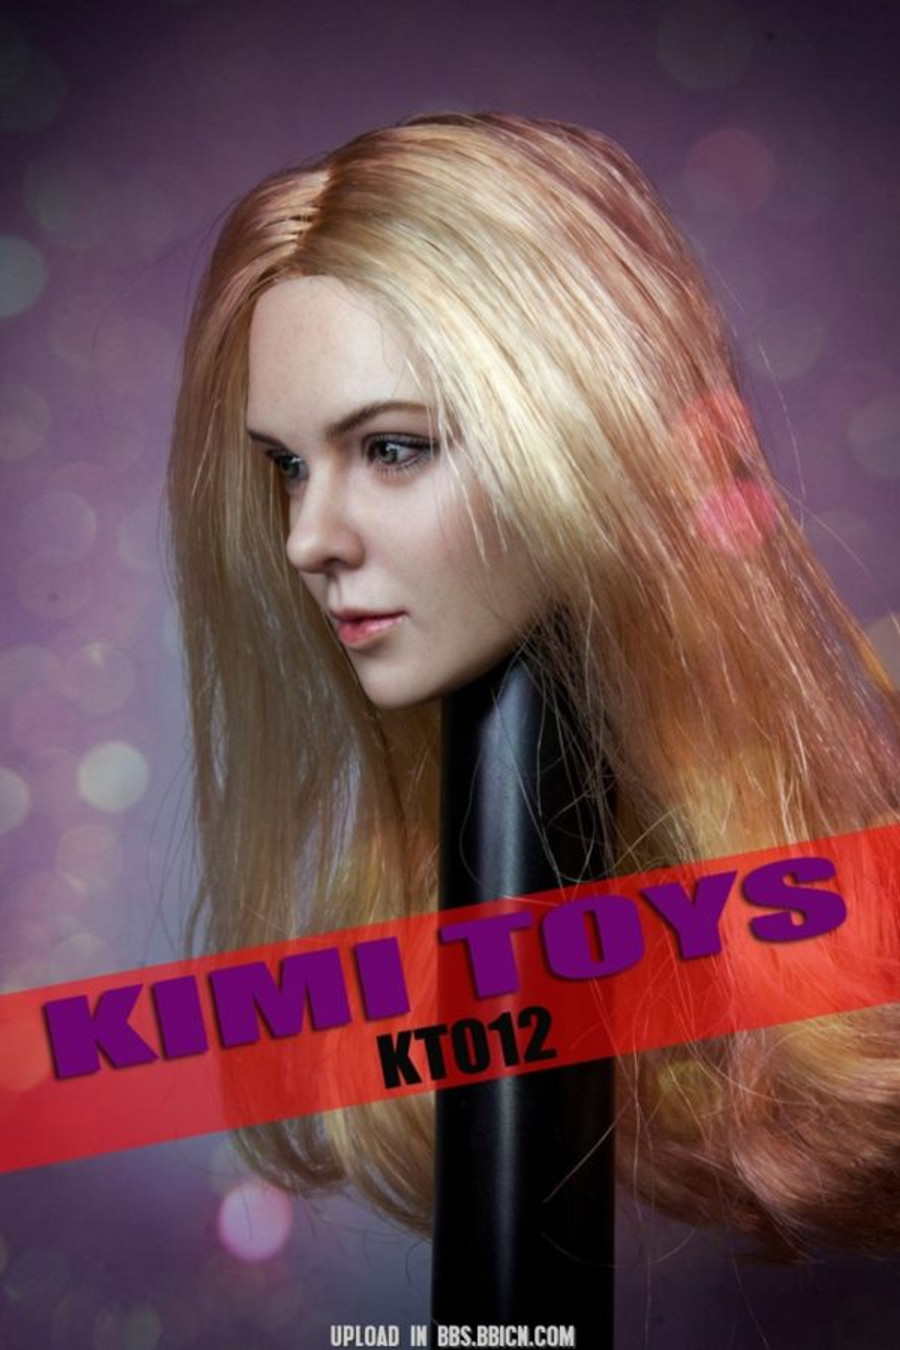 Kimi Toyz - European and American Female Headsculpt